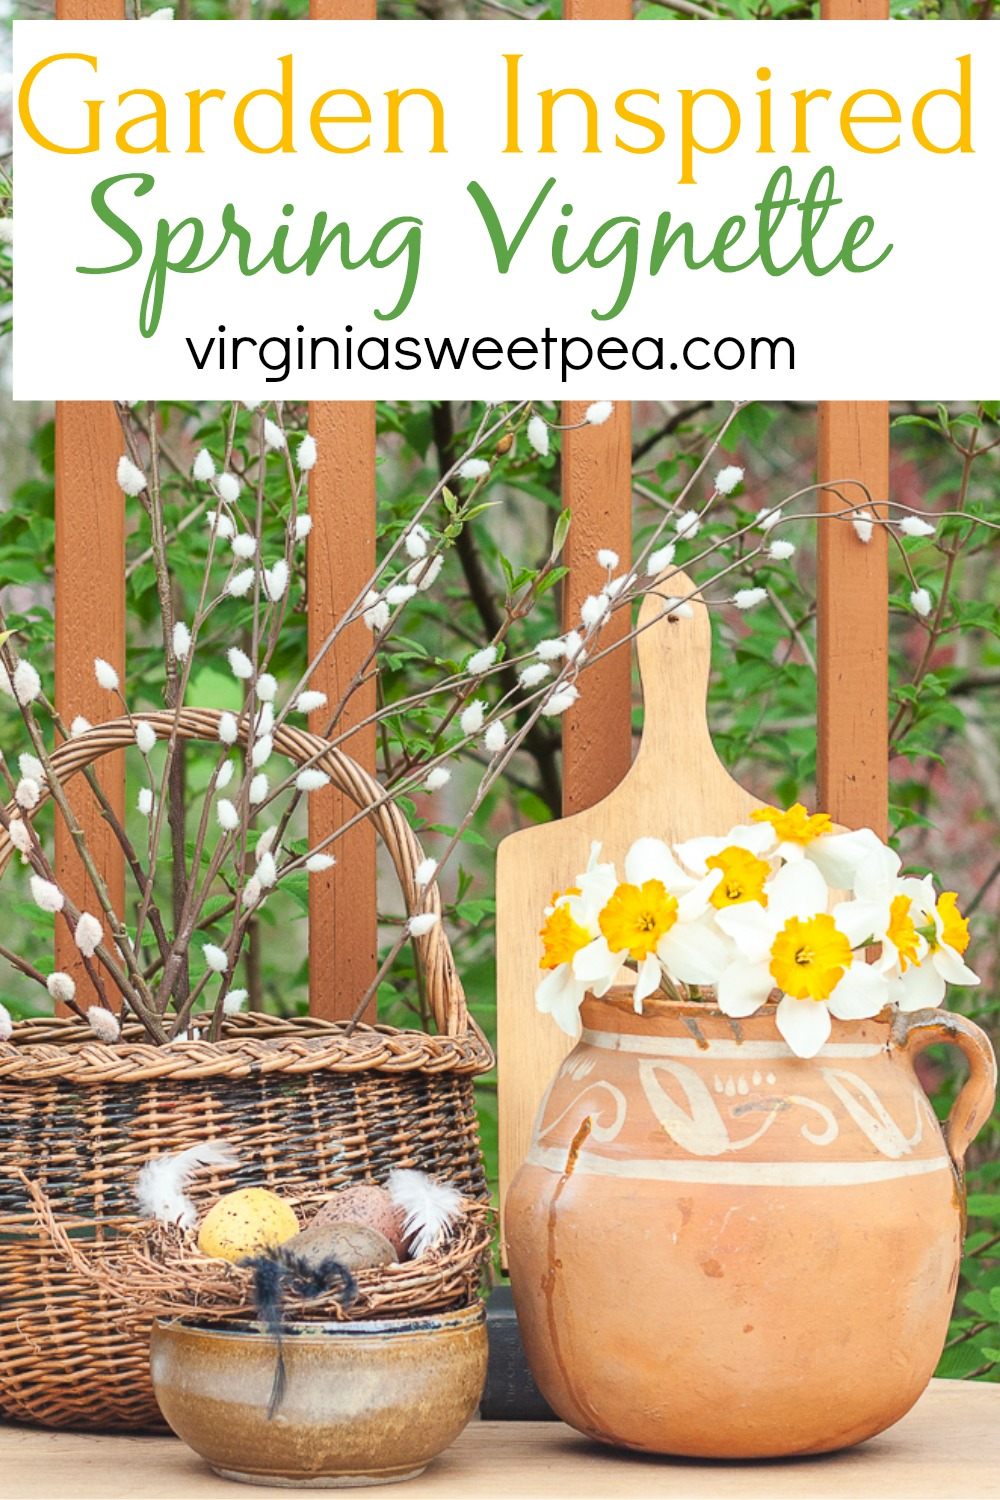 Garden Inspired Spring Vignette - This pretty vignette was created using a picture found on Instagram as inspiration.  Get tips on using an inspiration picture to create vignettes to enjoy in your home.  #springvignette #springdecor #gardenthemedspringdecor #gardeninspired #gardeninspireddecor  via @spaula